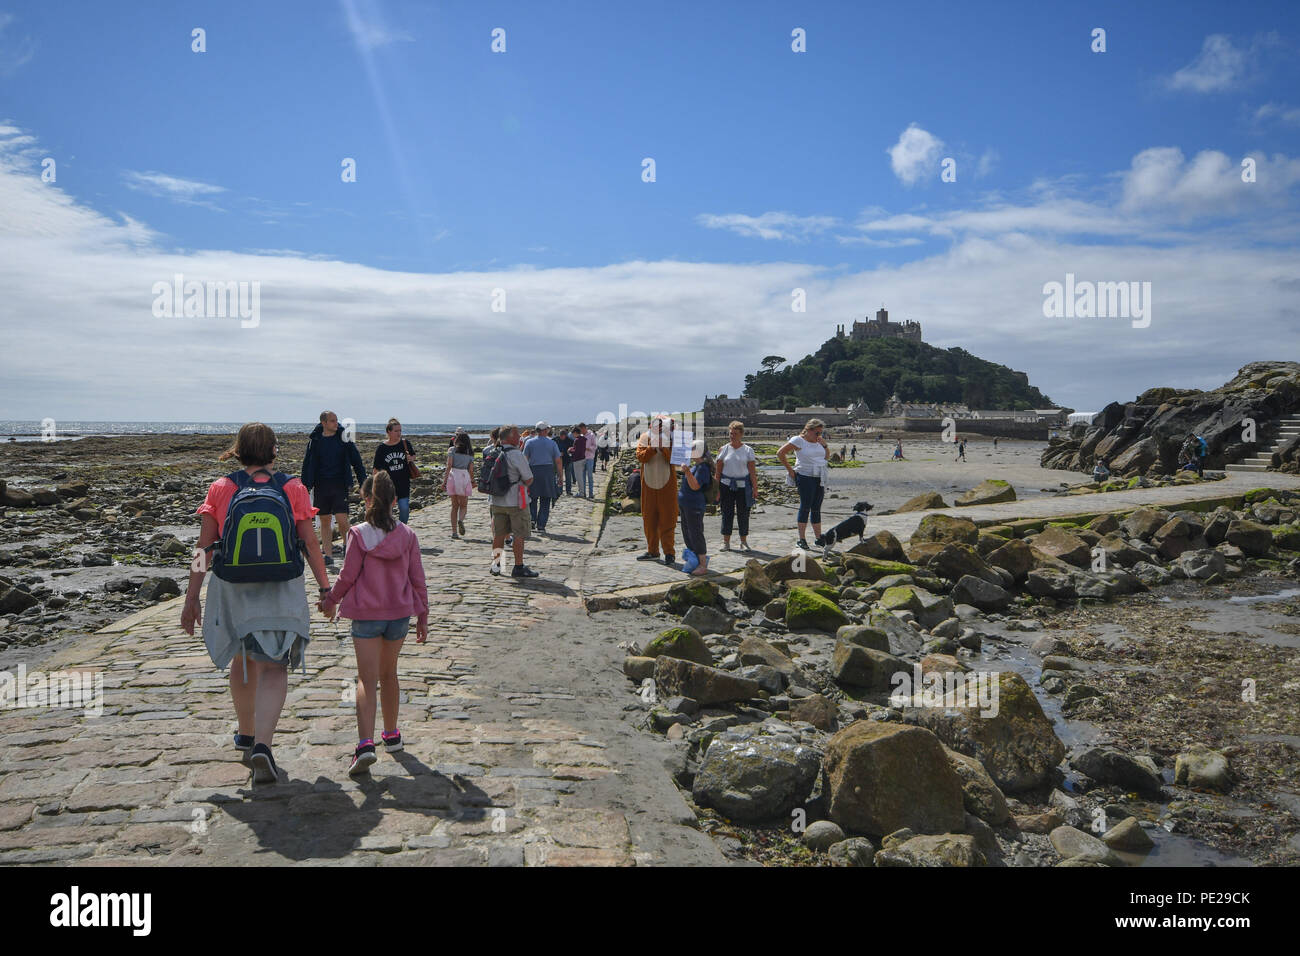 Marazion, Cornwall, UK. 12th August 2018. Anti trail hunt protestors , on the popular walkway to St Michaels Mount,  objecting to trail hunts taking place on National trust land. Credit: Simon Maycock/Alamy Live News - Stock Image